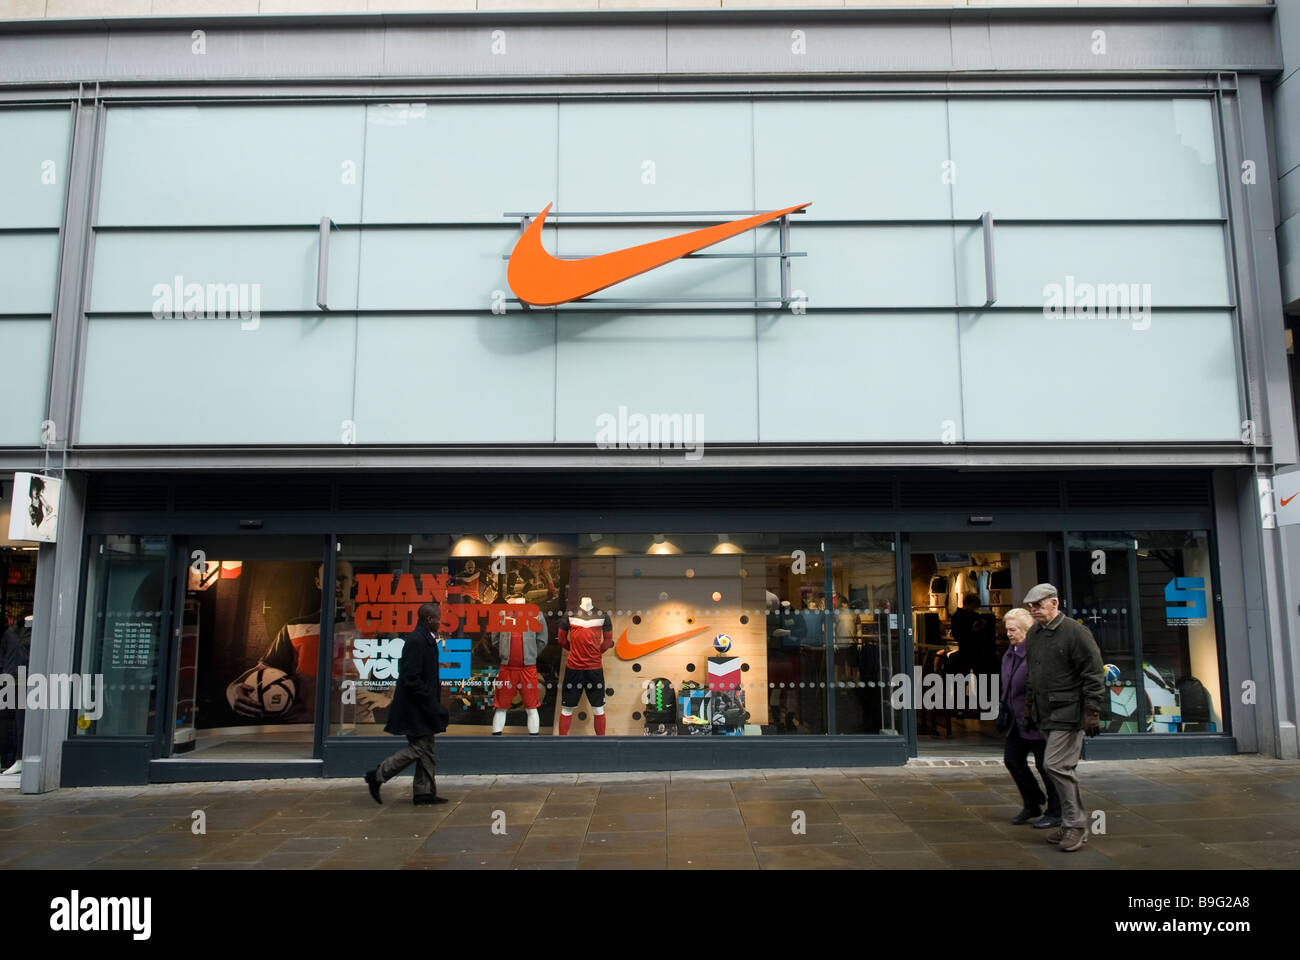 Nike store front Manchester city centre UK - Stock Image